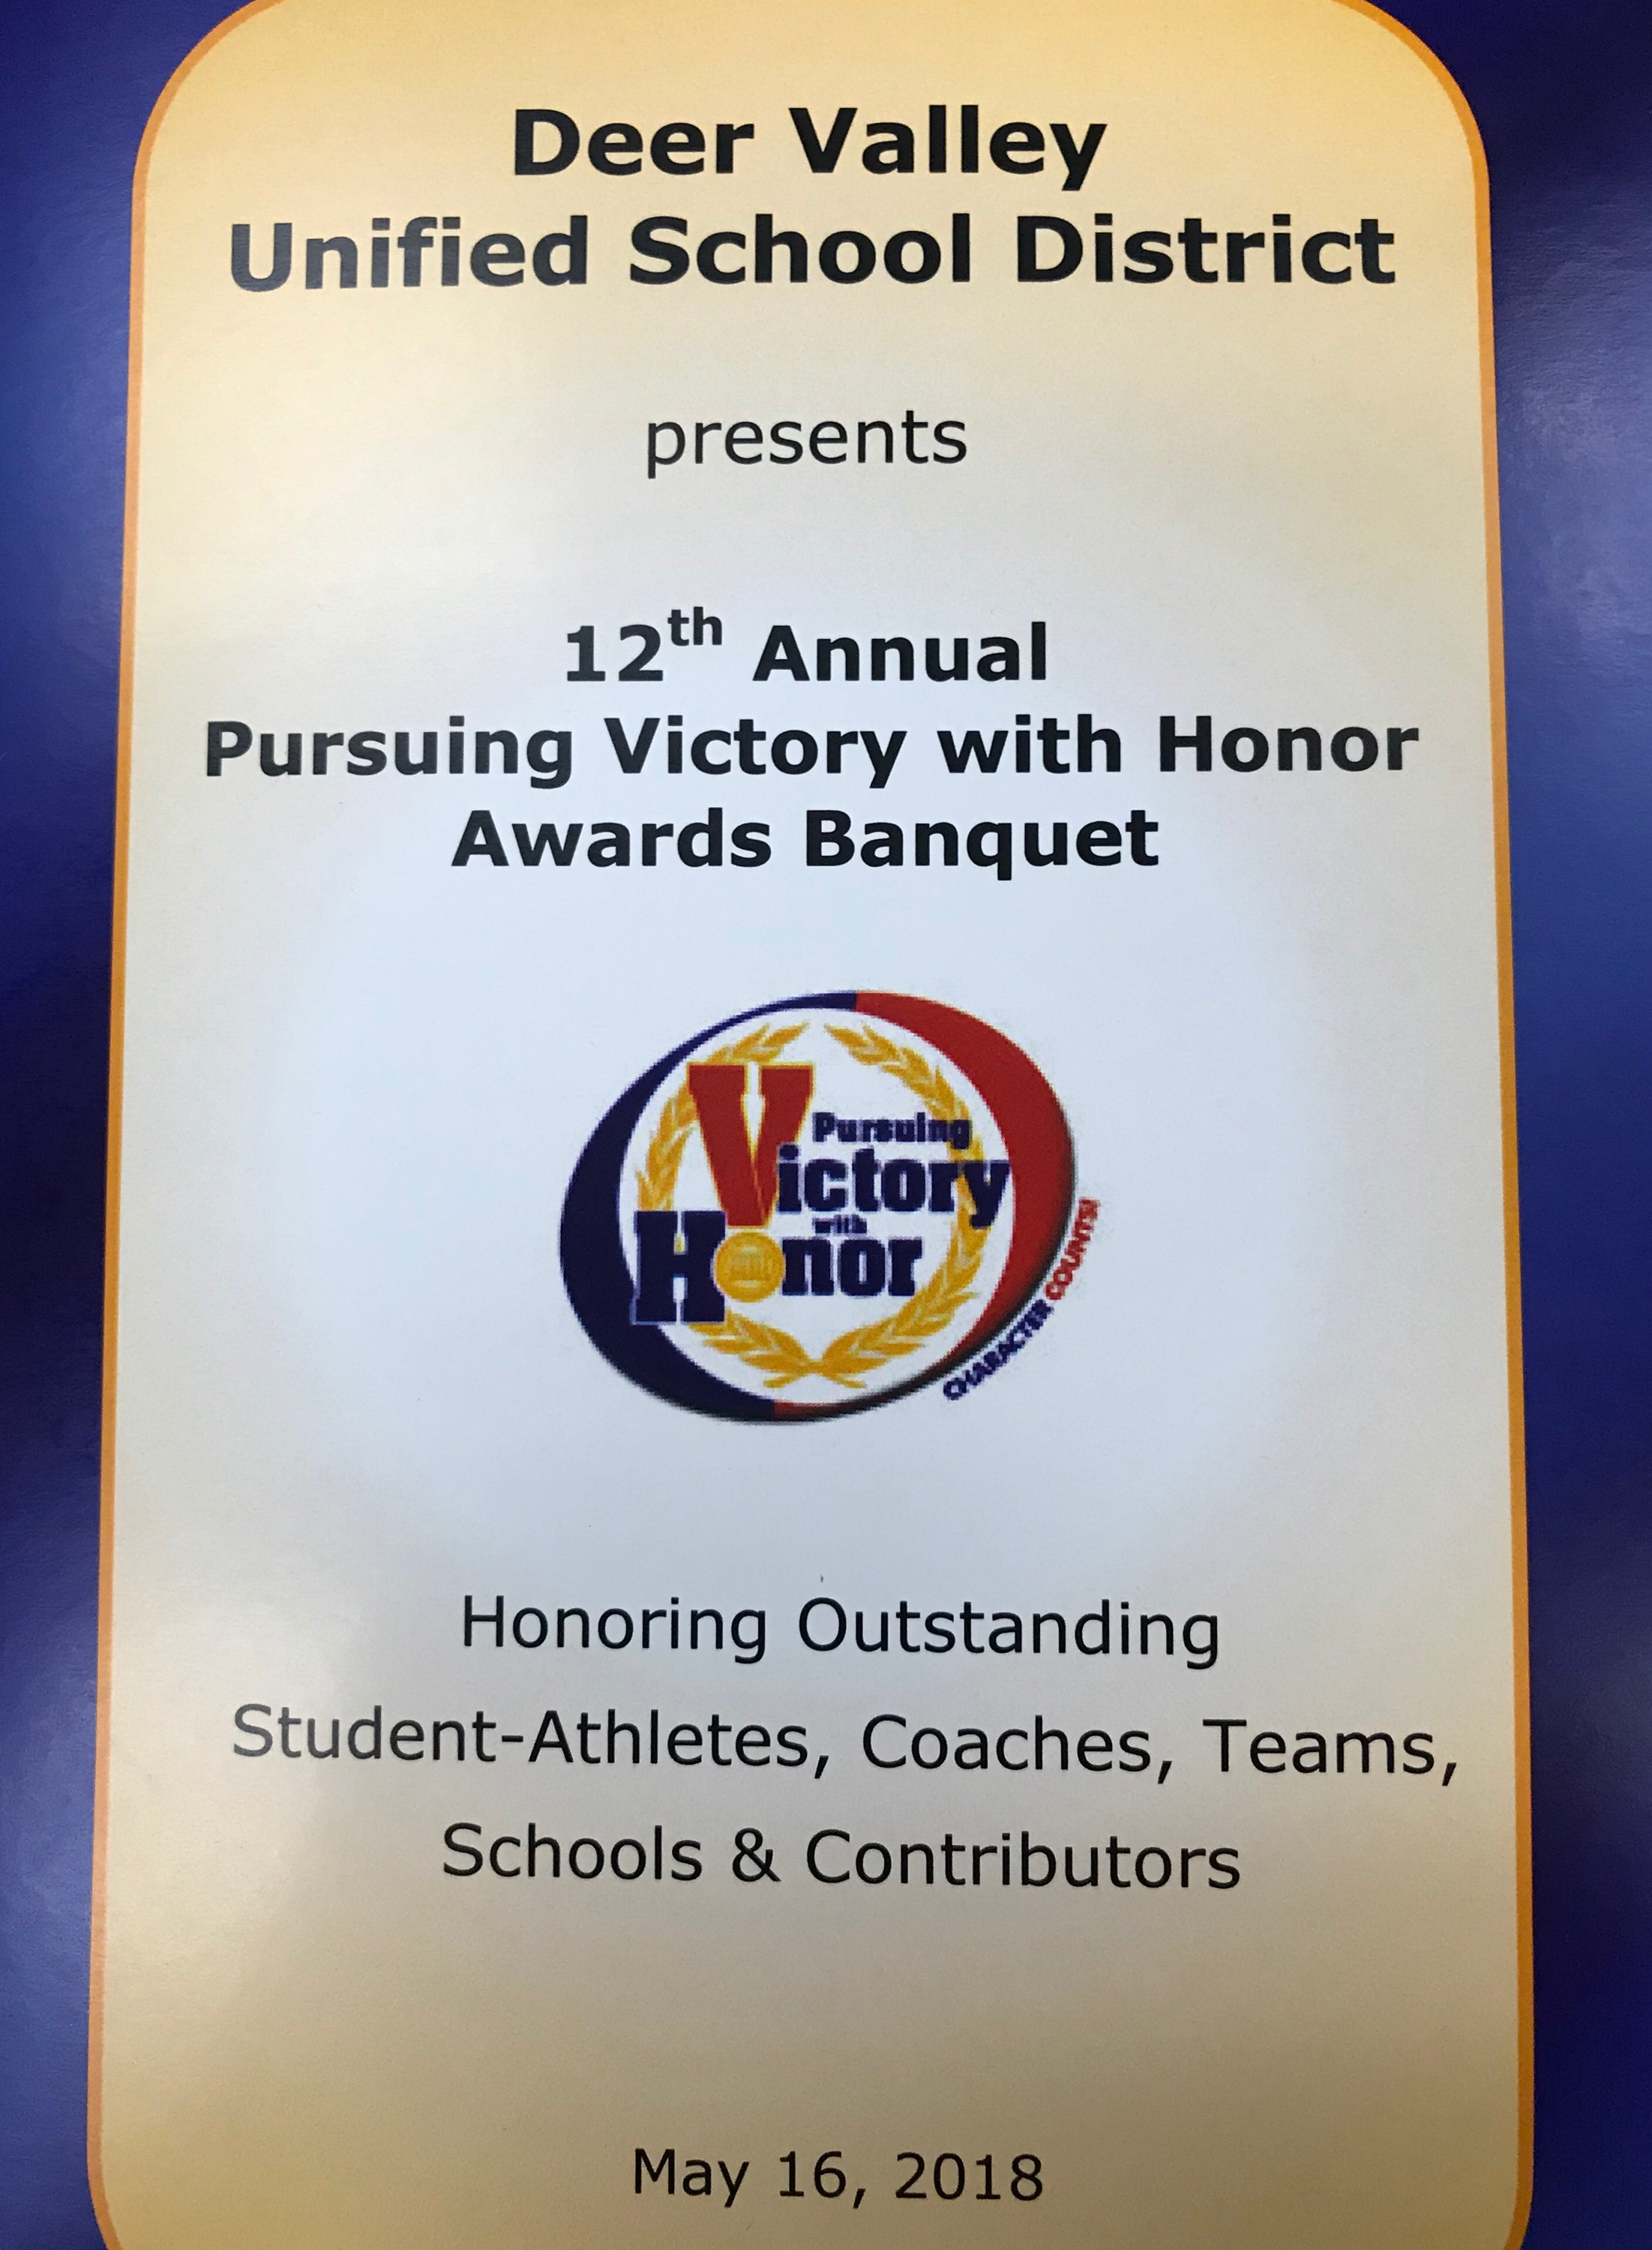 BADMINTON AND LIBERATORE AWARDED VICTORY WITH HONOR AWARDS